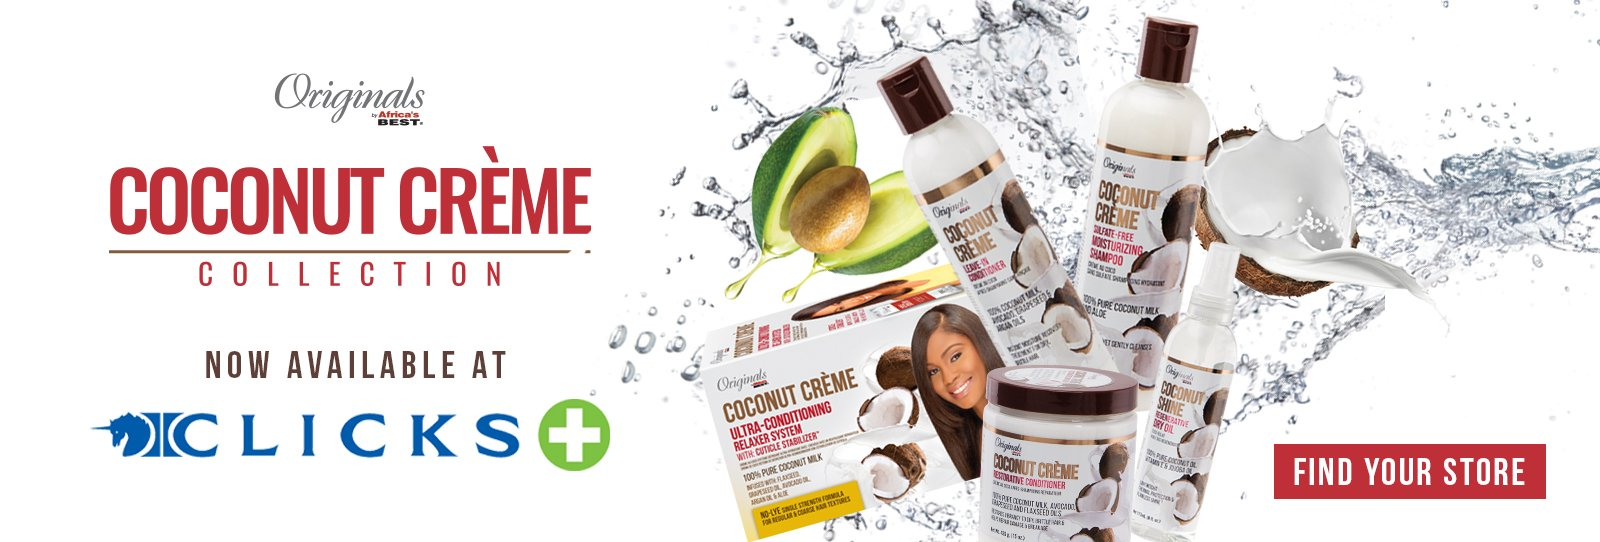 Coconut Creme Collection avaiable at Clicks locations